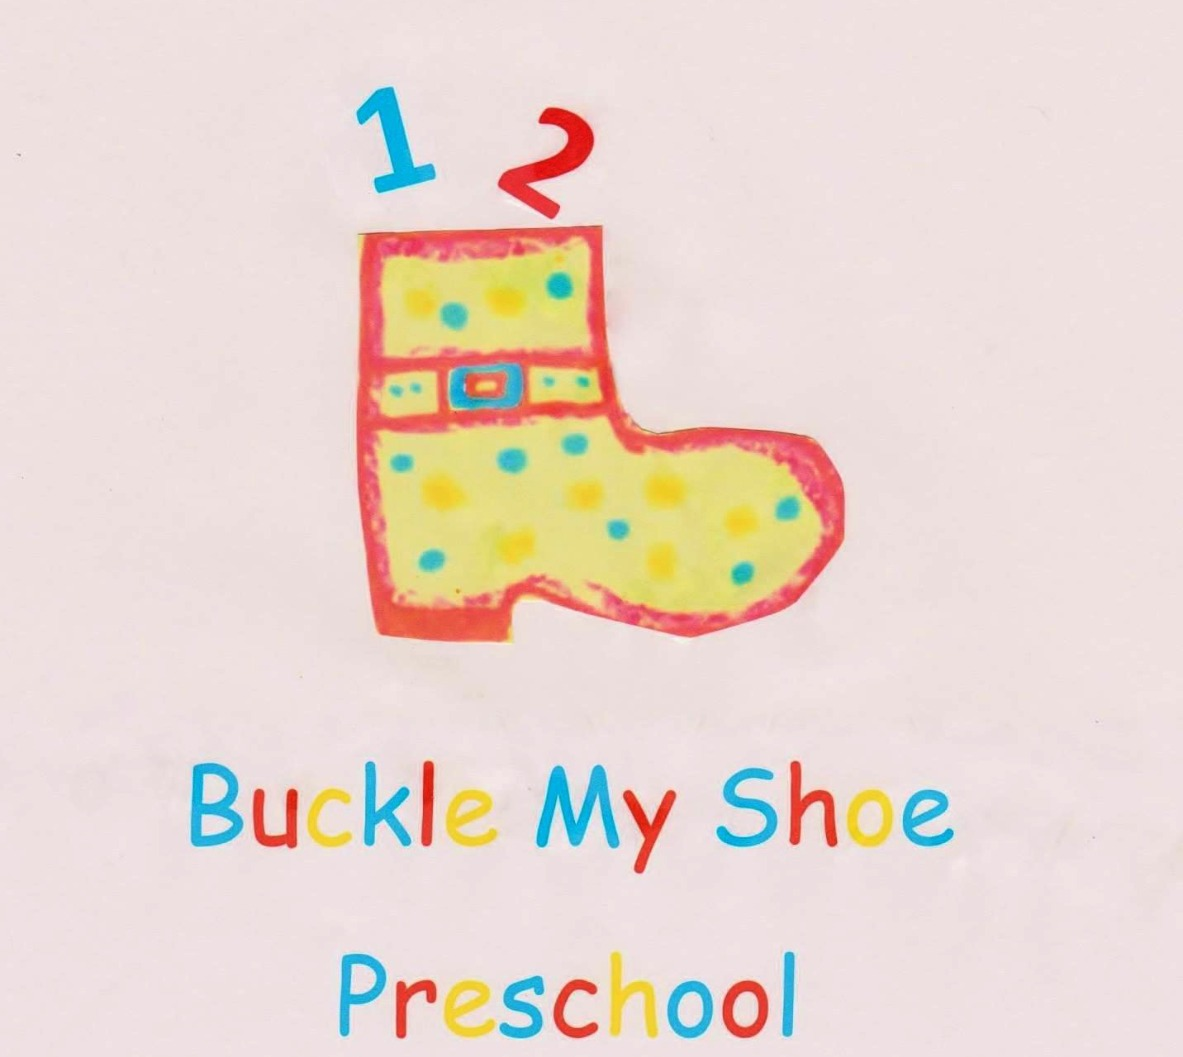 Puyallup 1 2 Buckle My Shoe Preschool